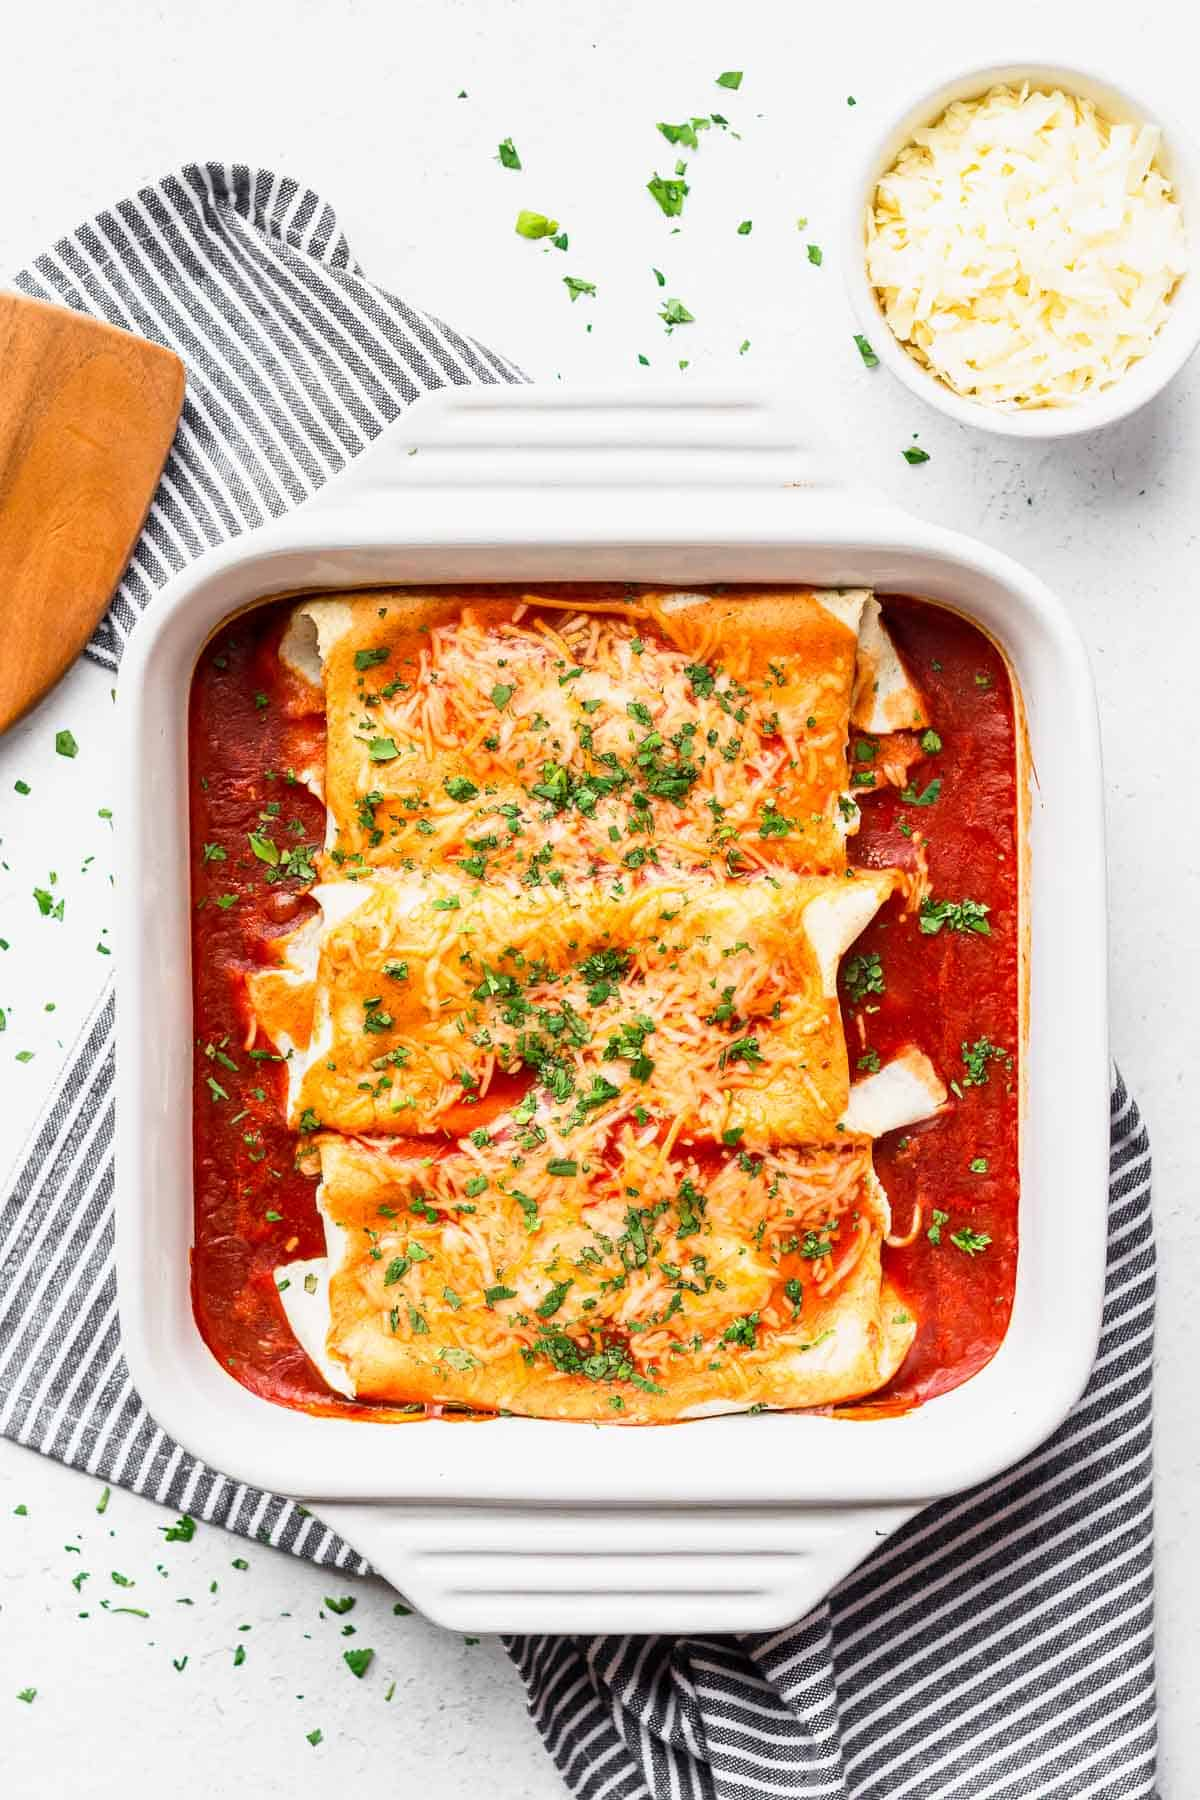 Baked cheesy chicken enchiladas in a white, square baking dish with a striped towel, bowl of shredded cheese, and server next to it